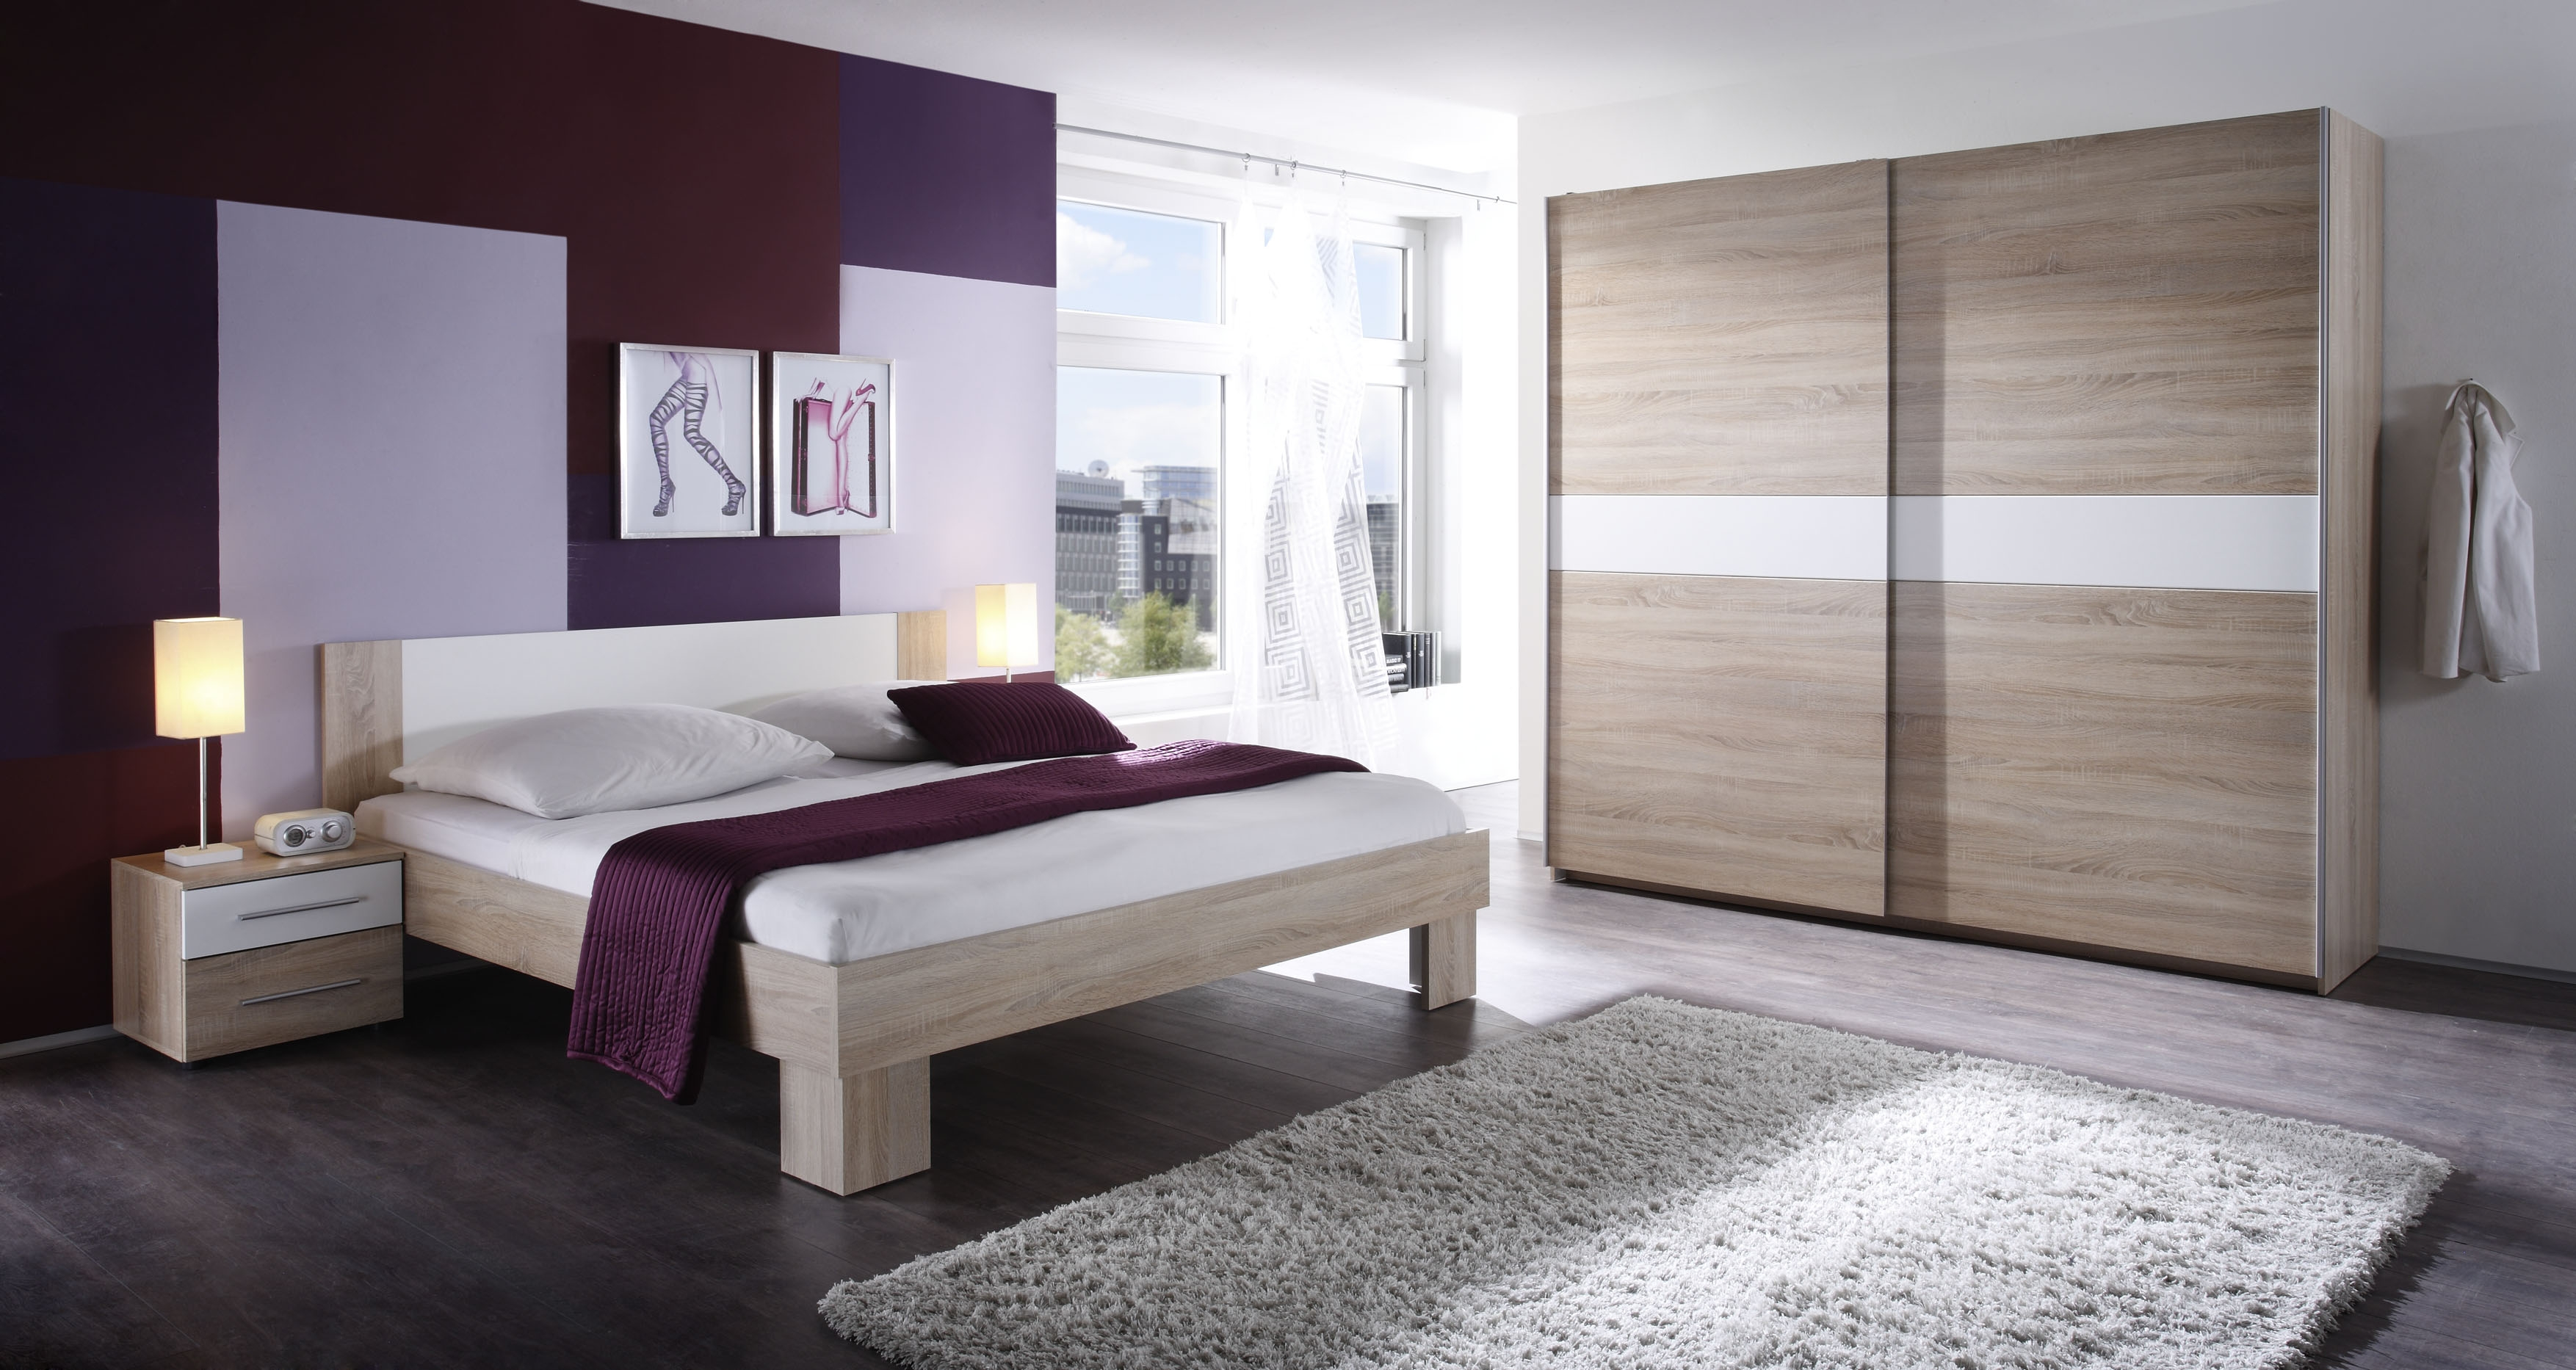 wandfarben gestaltungsideen alles ber wohndesign und m belideen. Black Bedroom Furniture Sets. Home Design Ideas